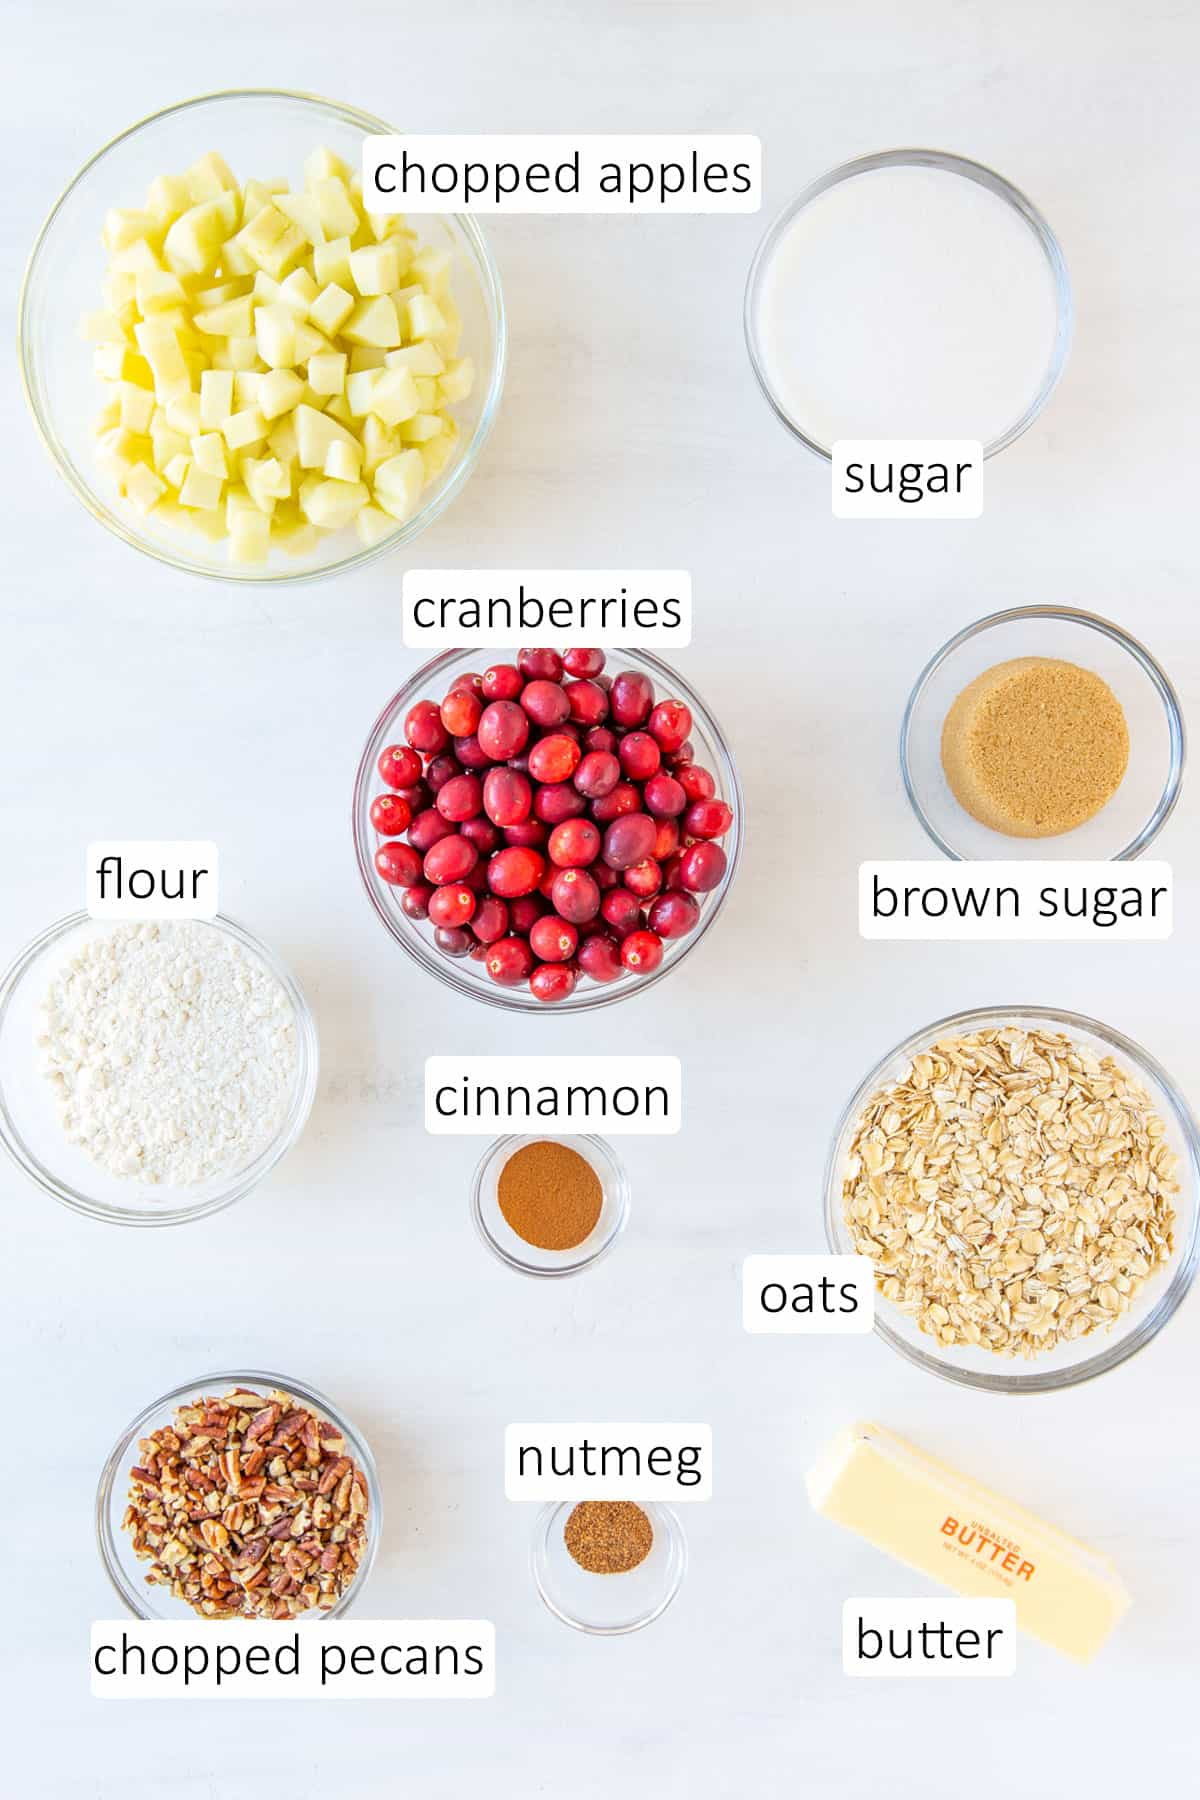 Overhead view of ingredients for cranberry apple crisp on a white surface.